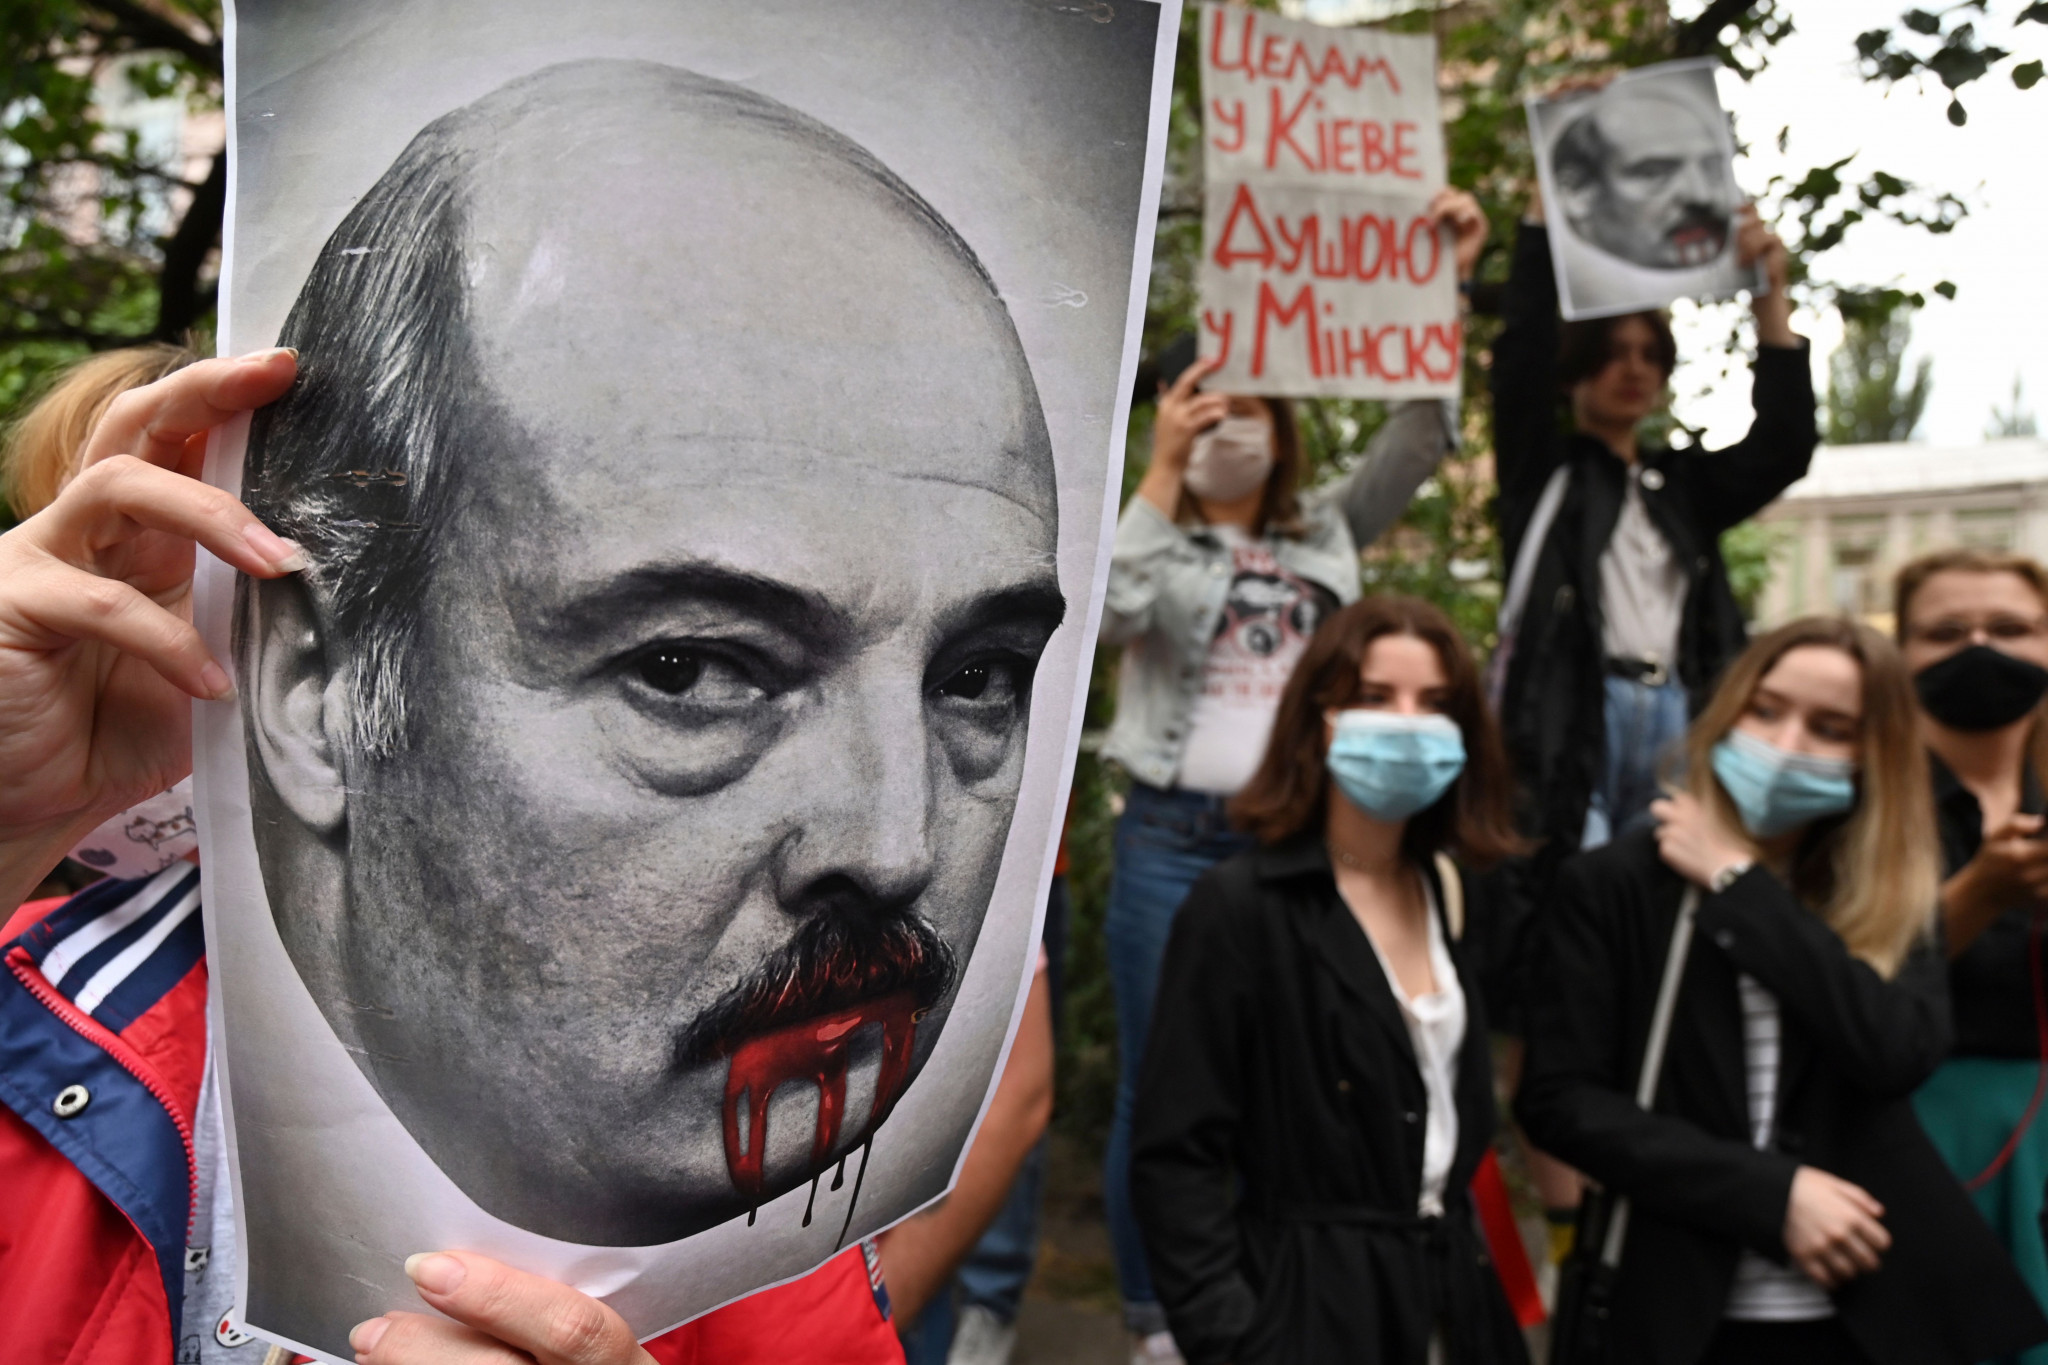 Protests have taken place in Belarus against President Alexander Lukashenko ©Getty Images